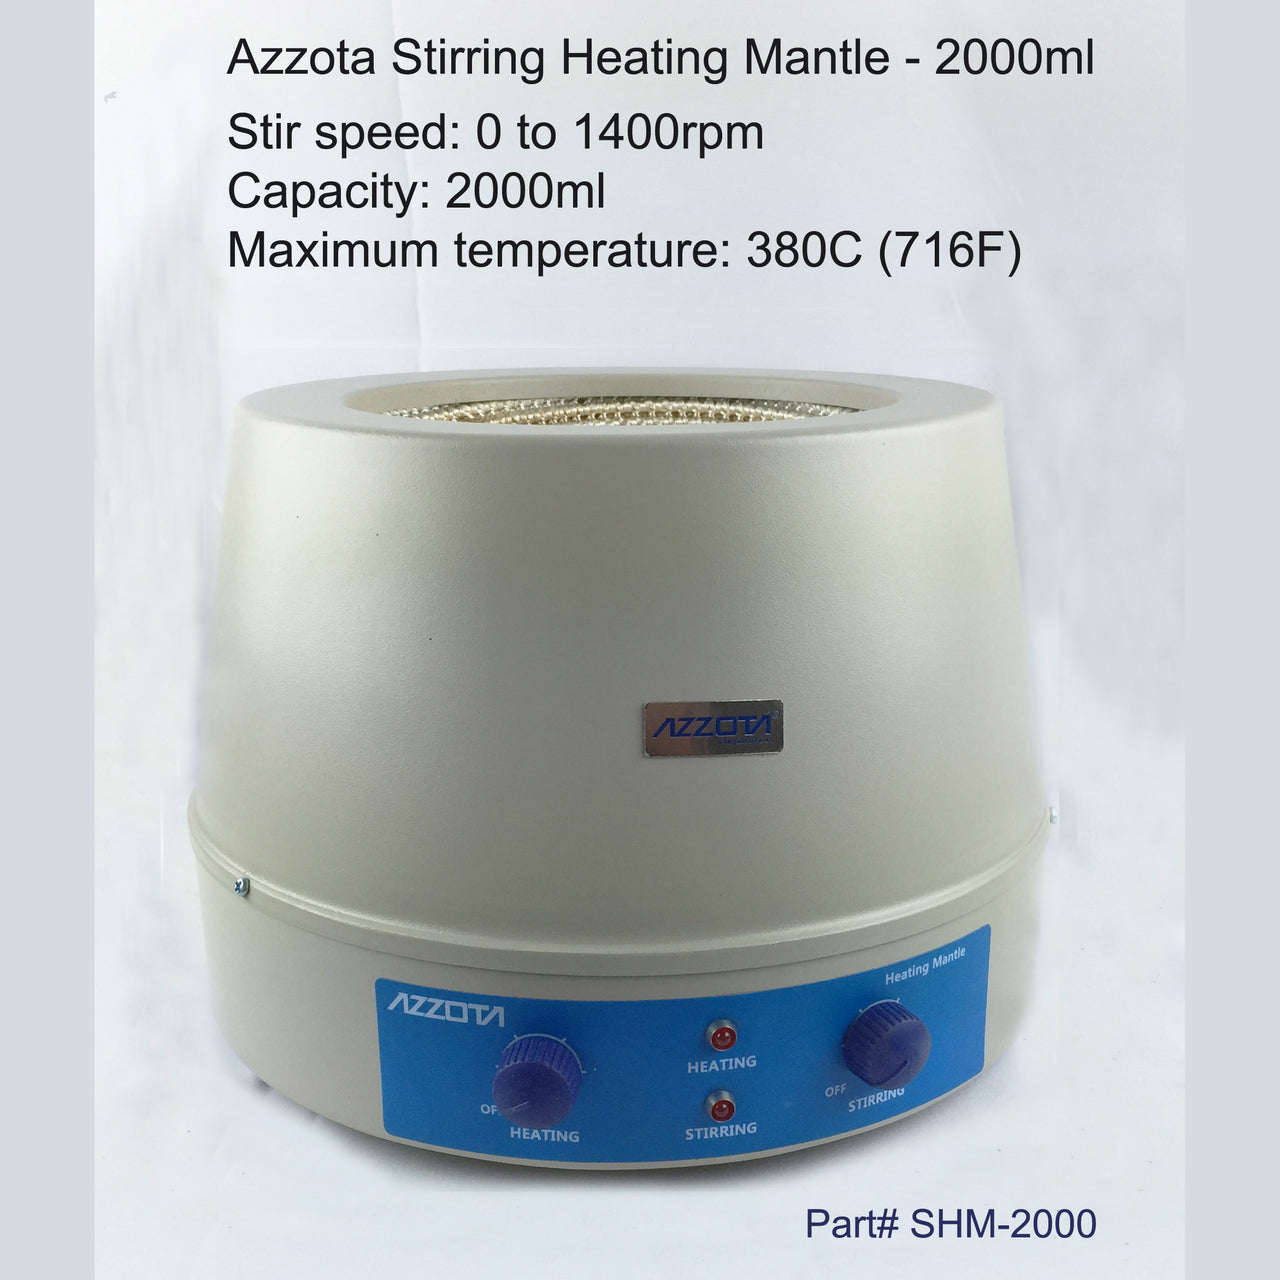 Azzota® Stirring Heating Mantle, 2000ml